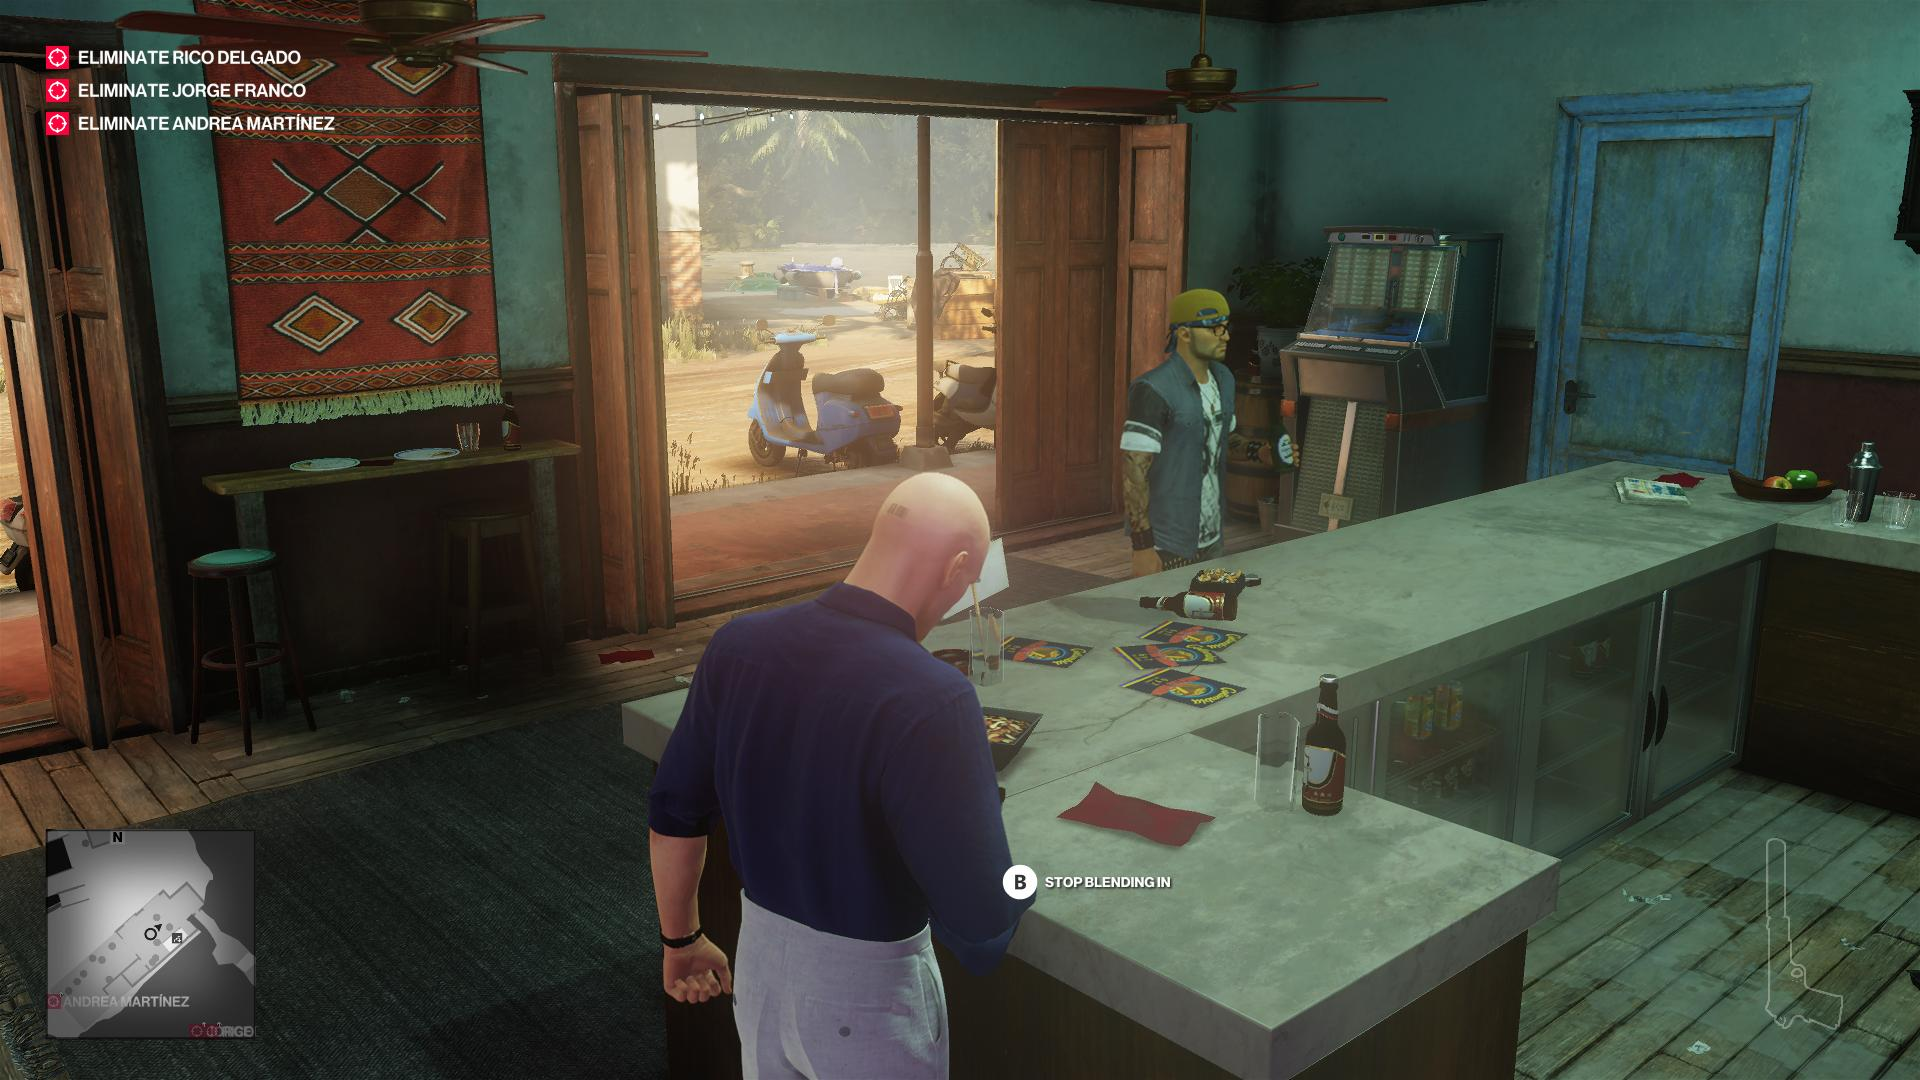 Agent 47 is standing at the bar, while a man in street threads is also at the bar.